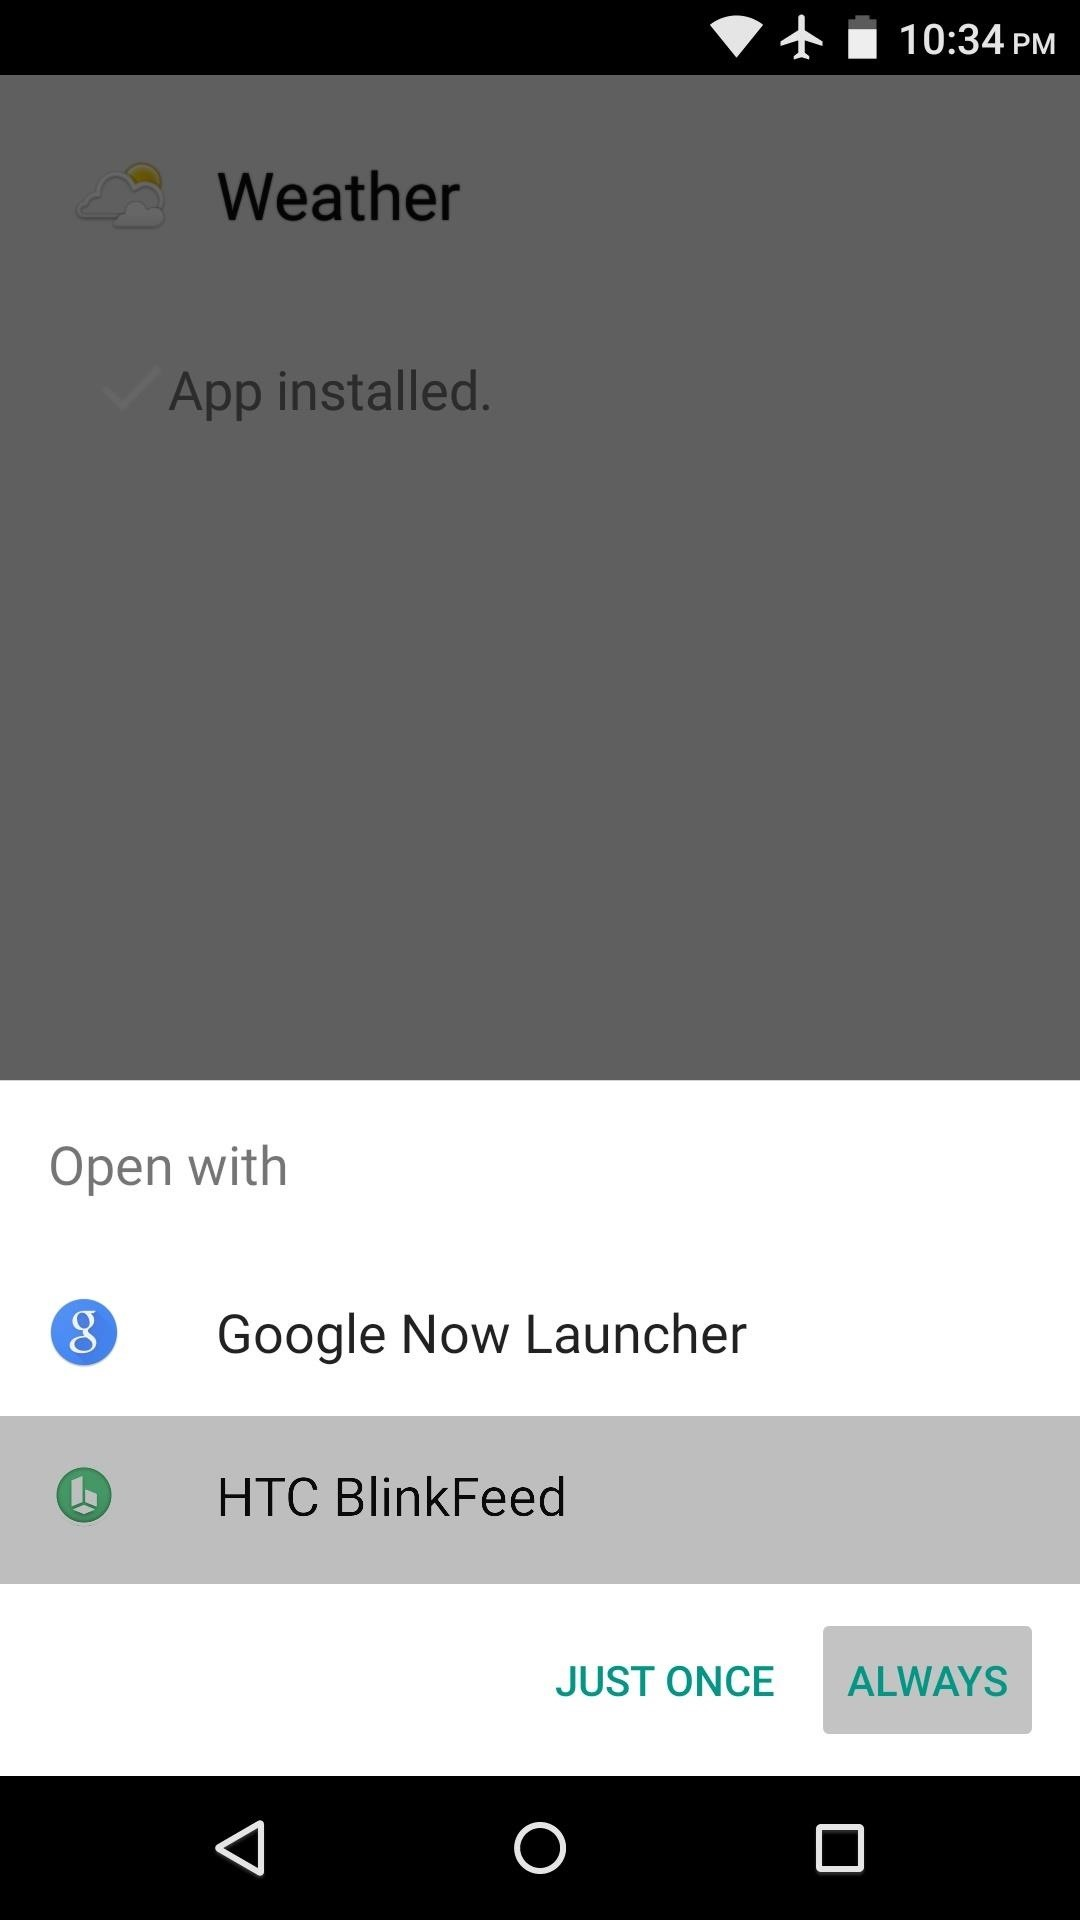 How to Install HTC's BlinkFeed Launcher on Any Android Device